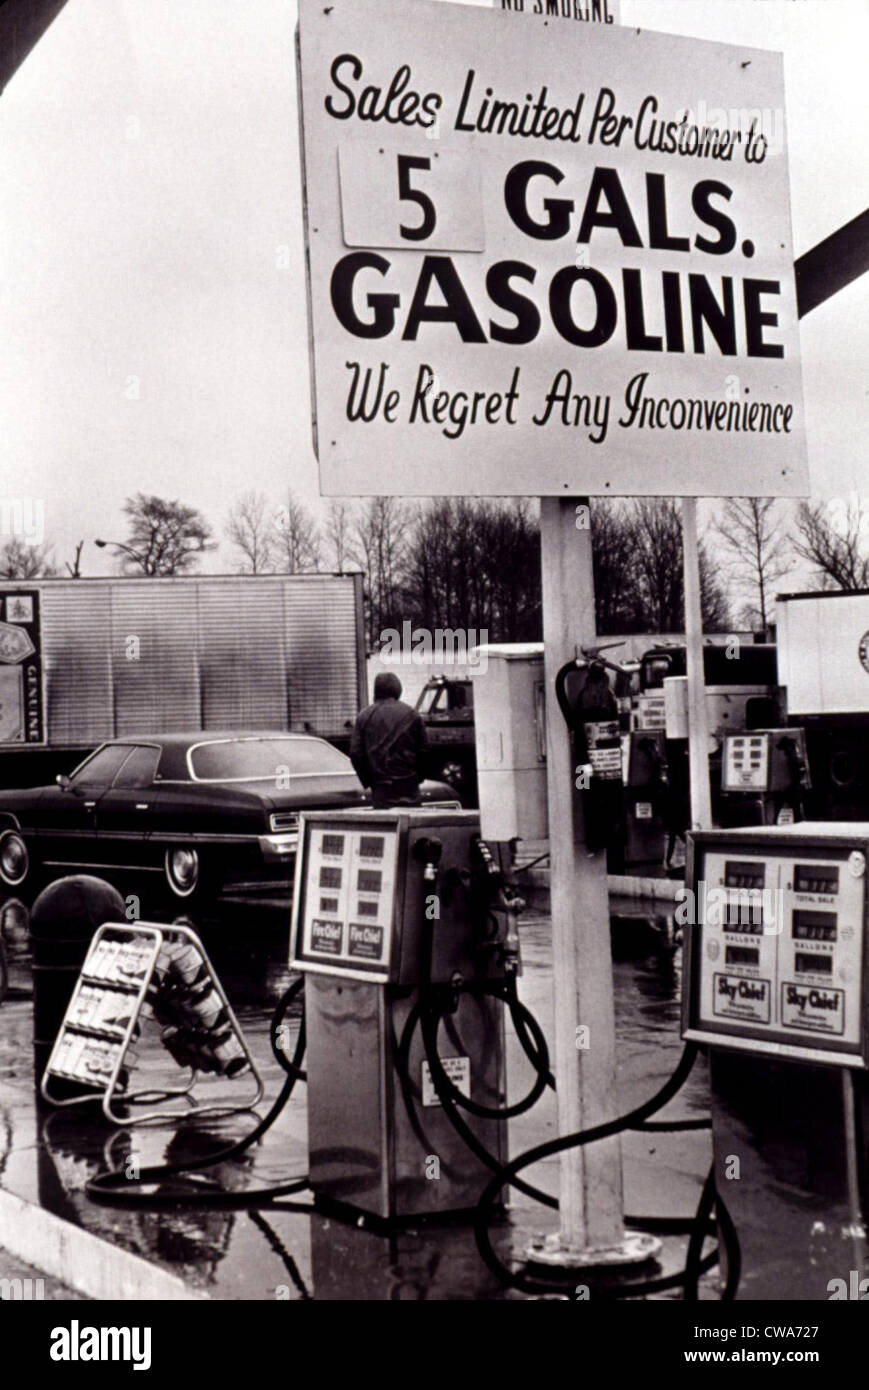 GAS SHORTAGE-Gasoline limit iin Ohio during shortage in 1974.. Courtesy: CSU Archives / Everett Collection - Stock Image